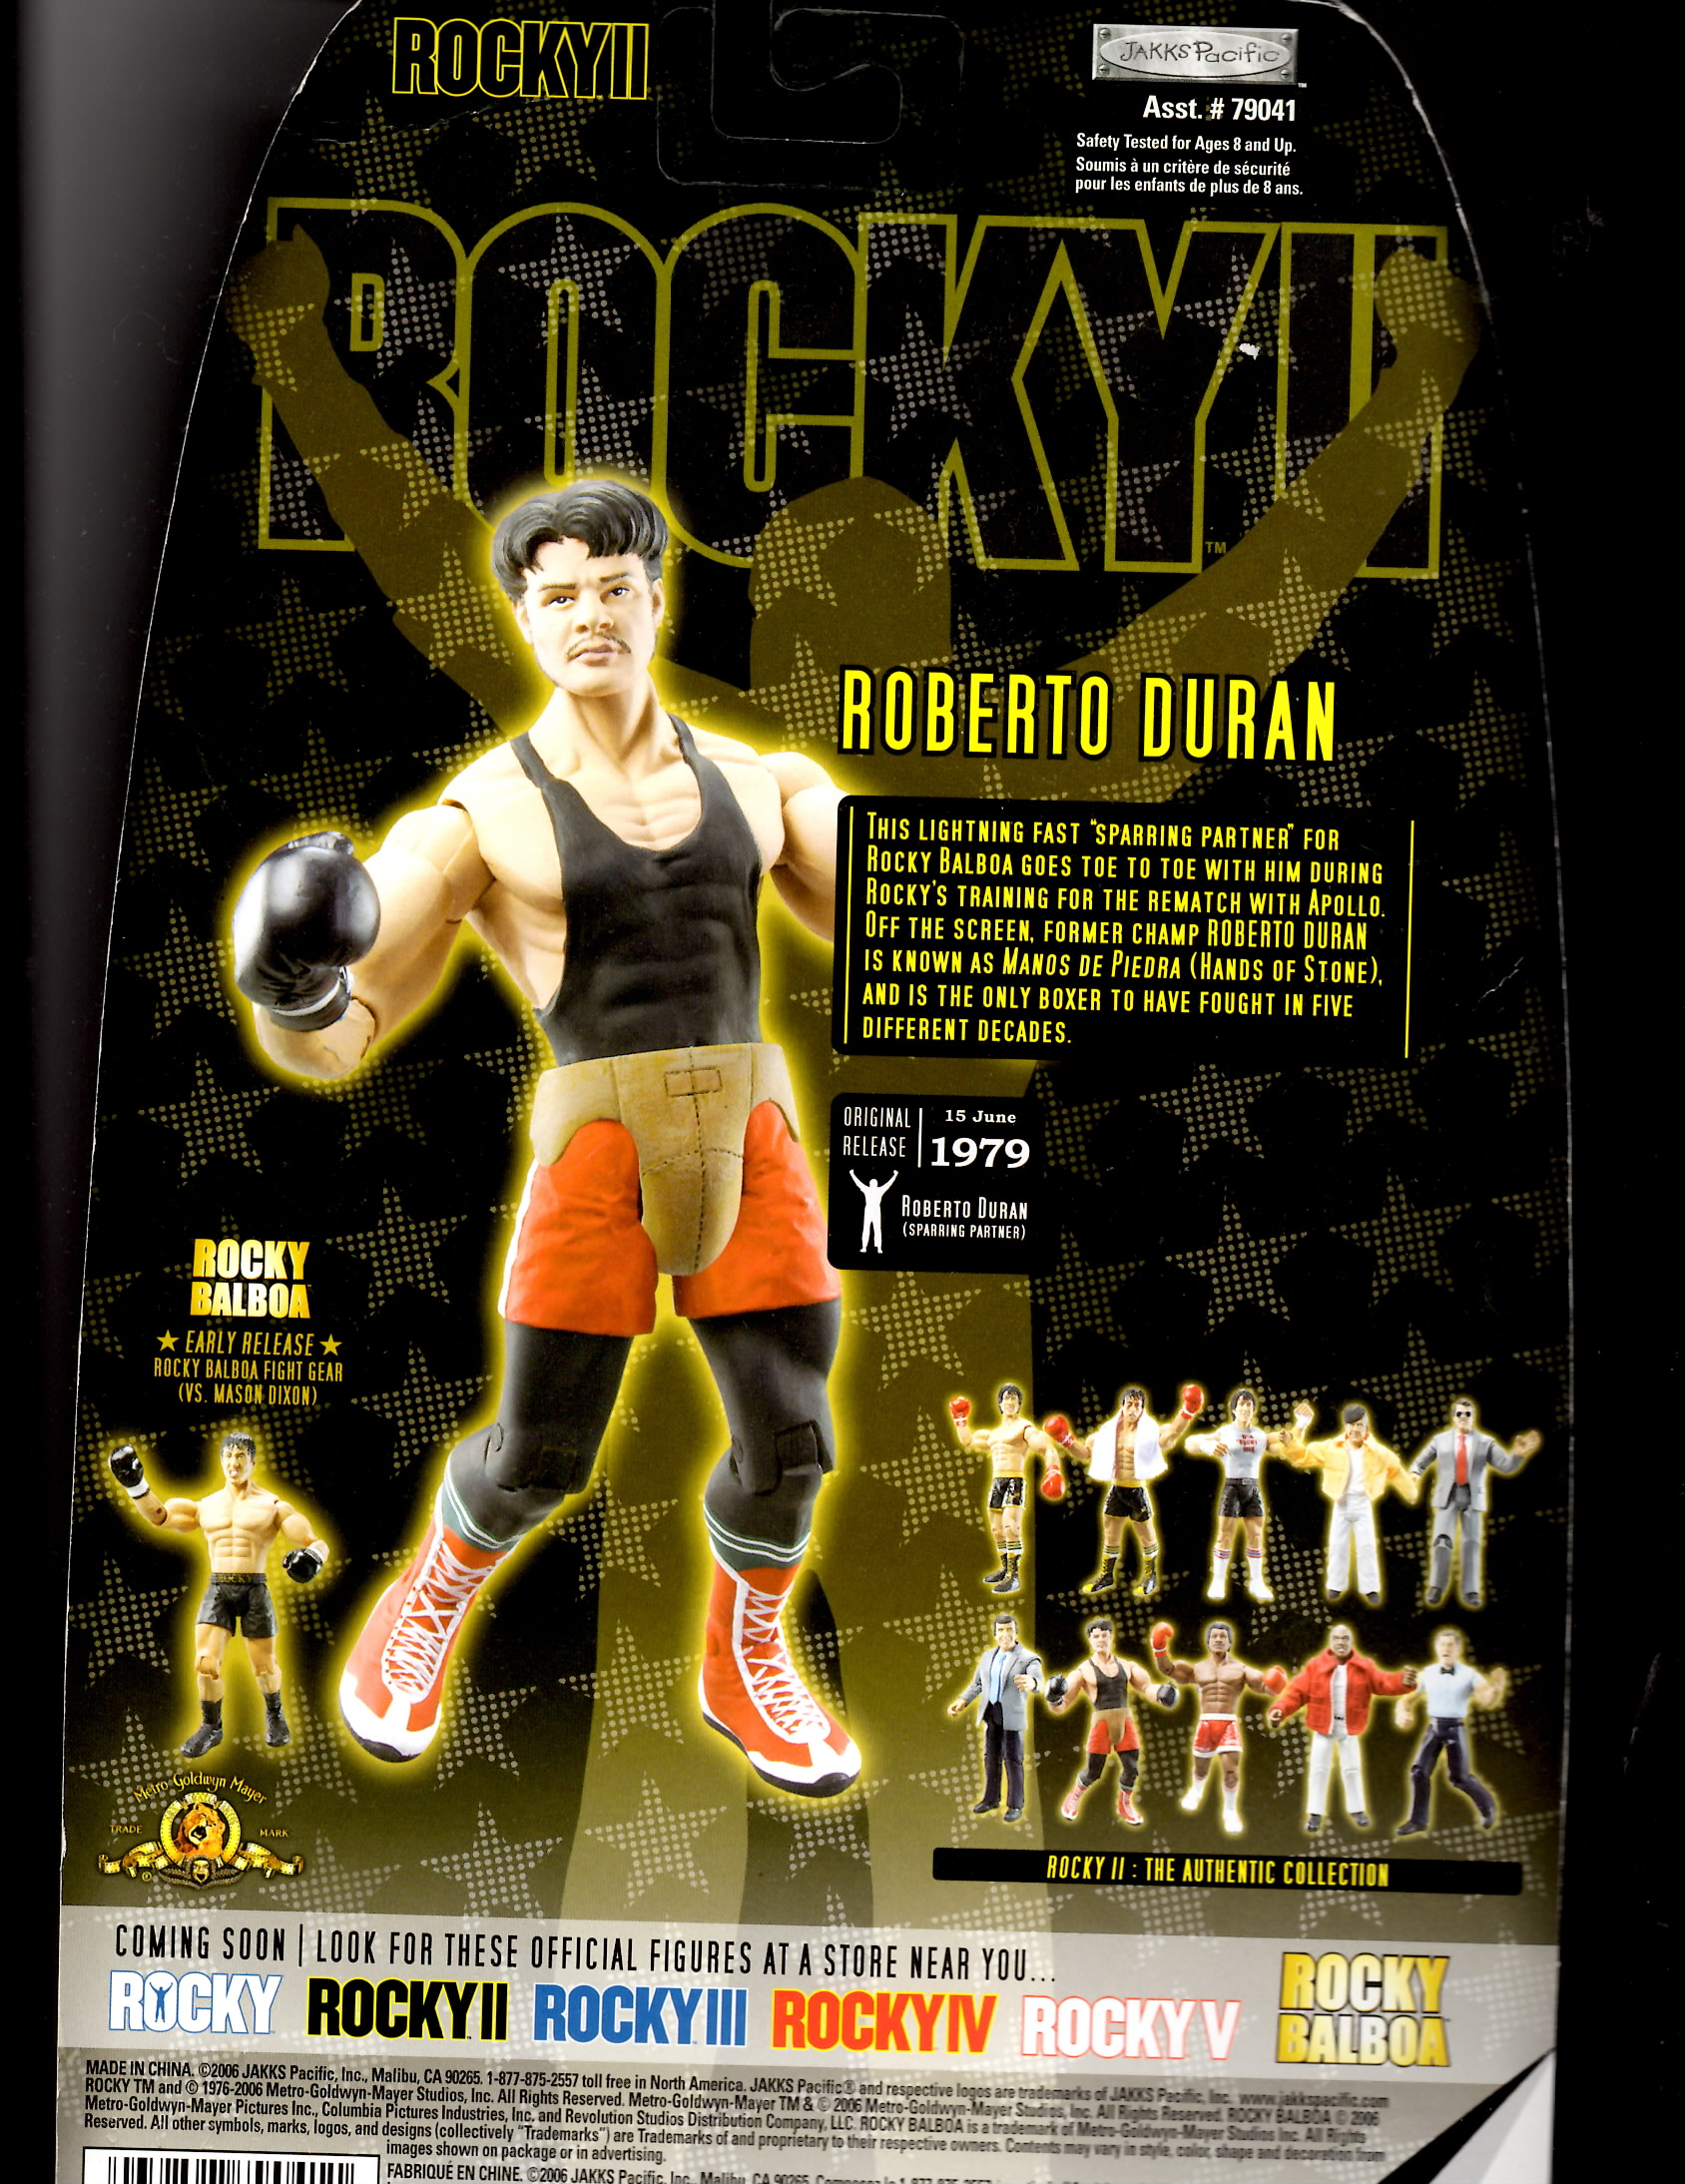 Roberto Duran action figure toy from Rocky II movie